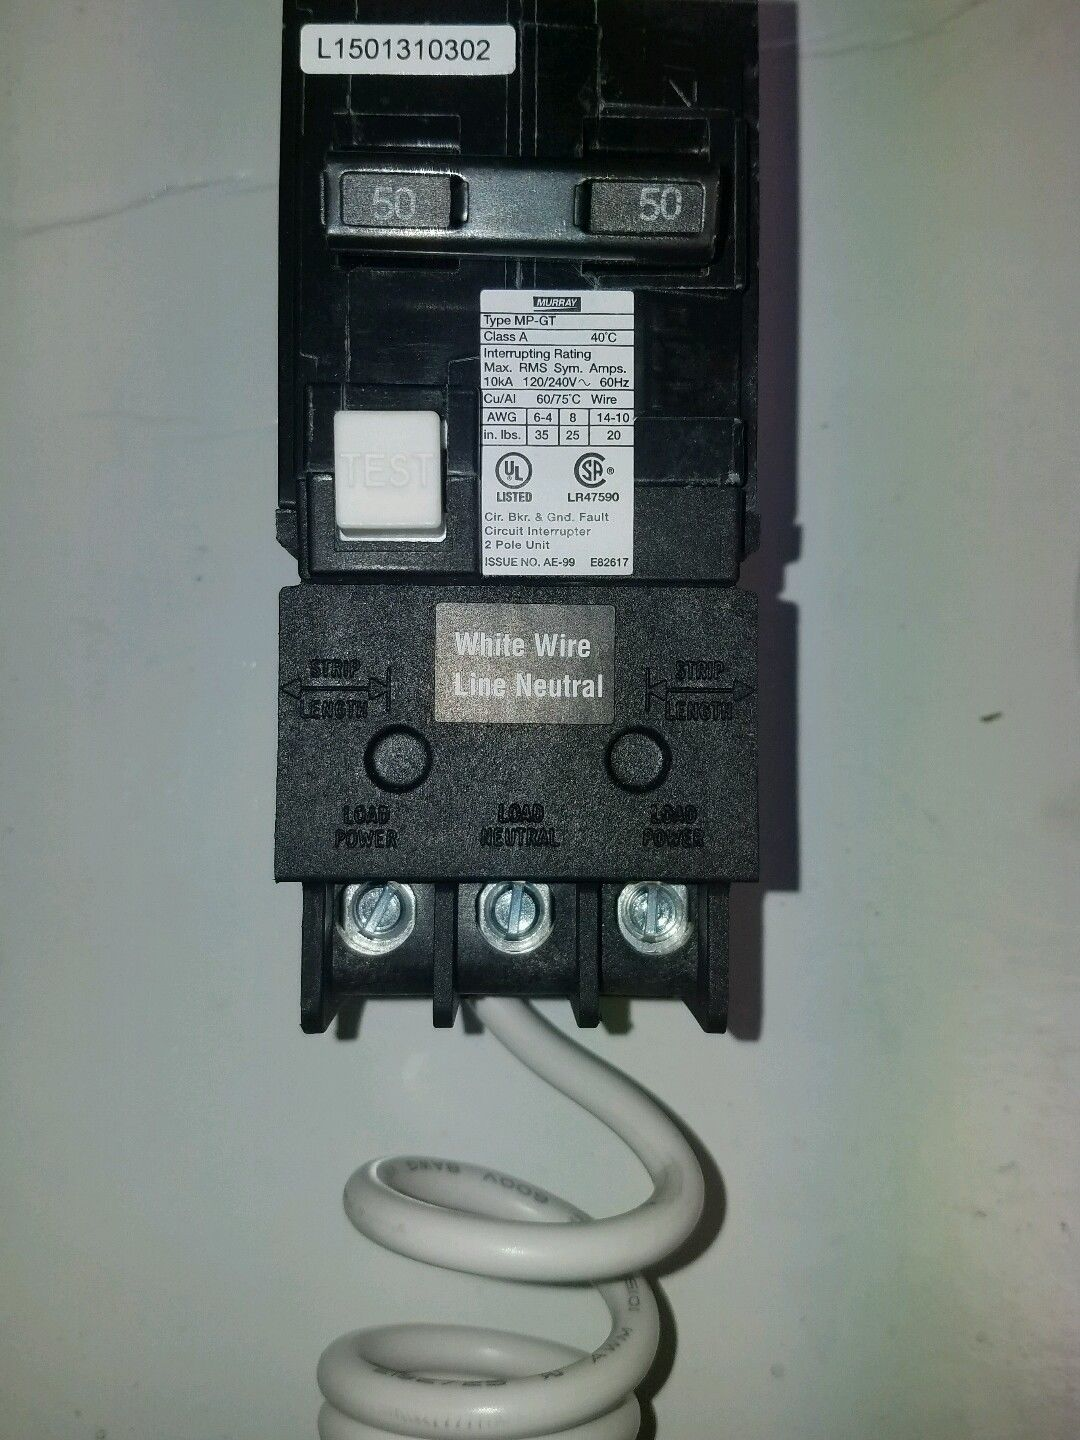 20 murray gfci circuit breaker pictures and ideas on stem education50 amp double pole gfci breaker